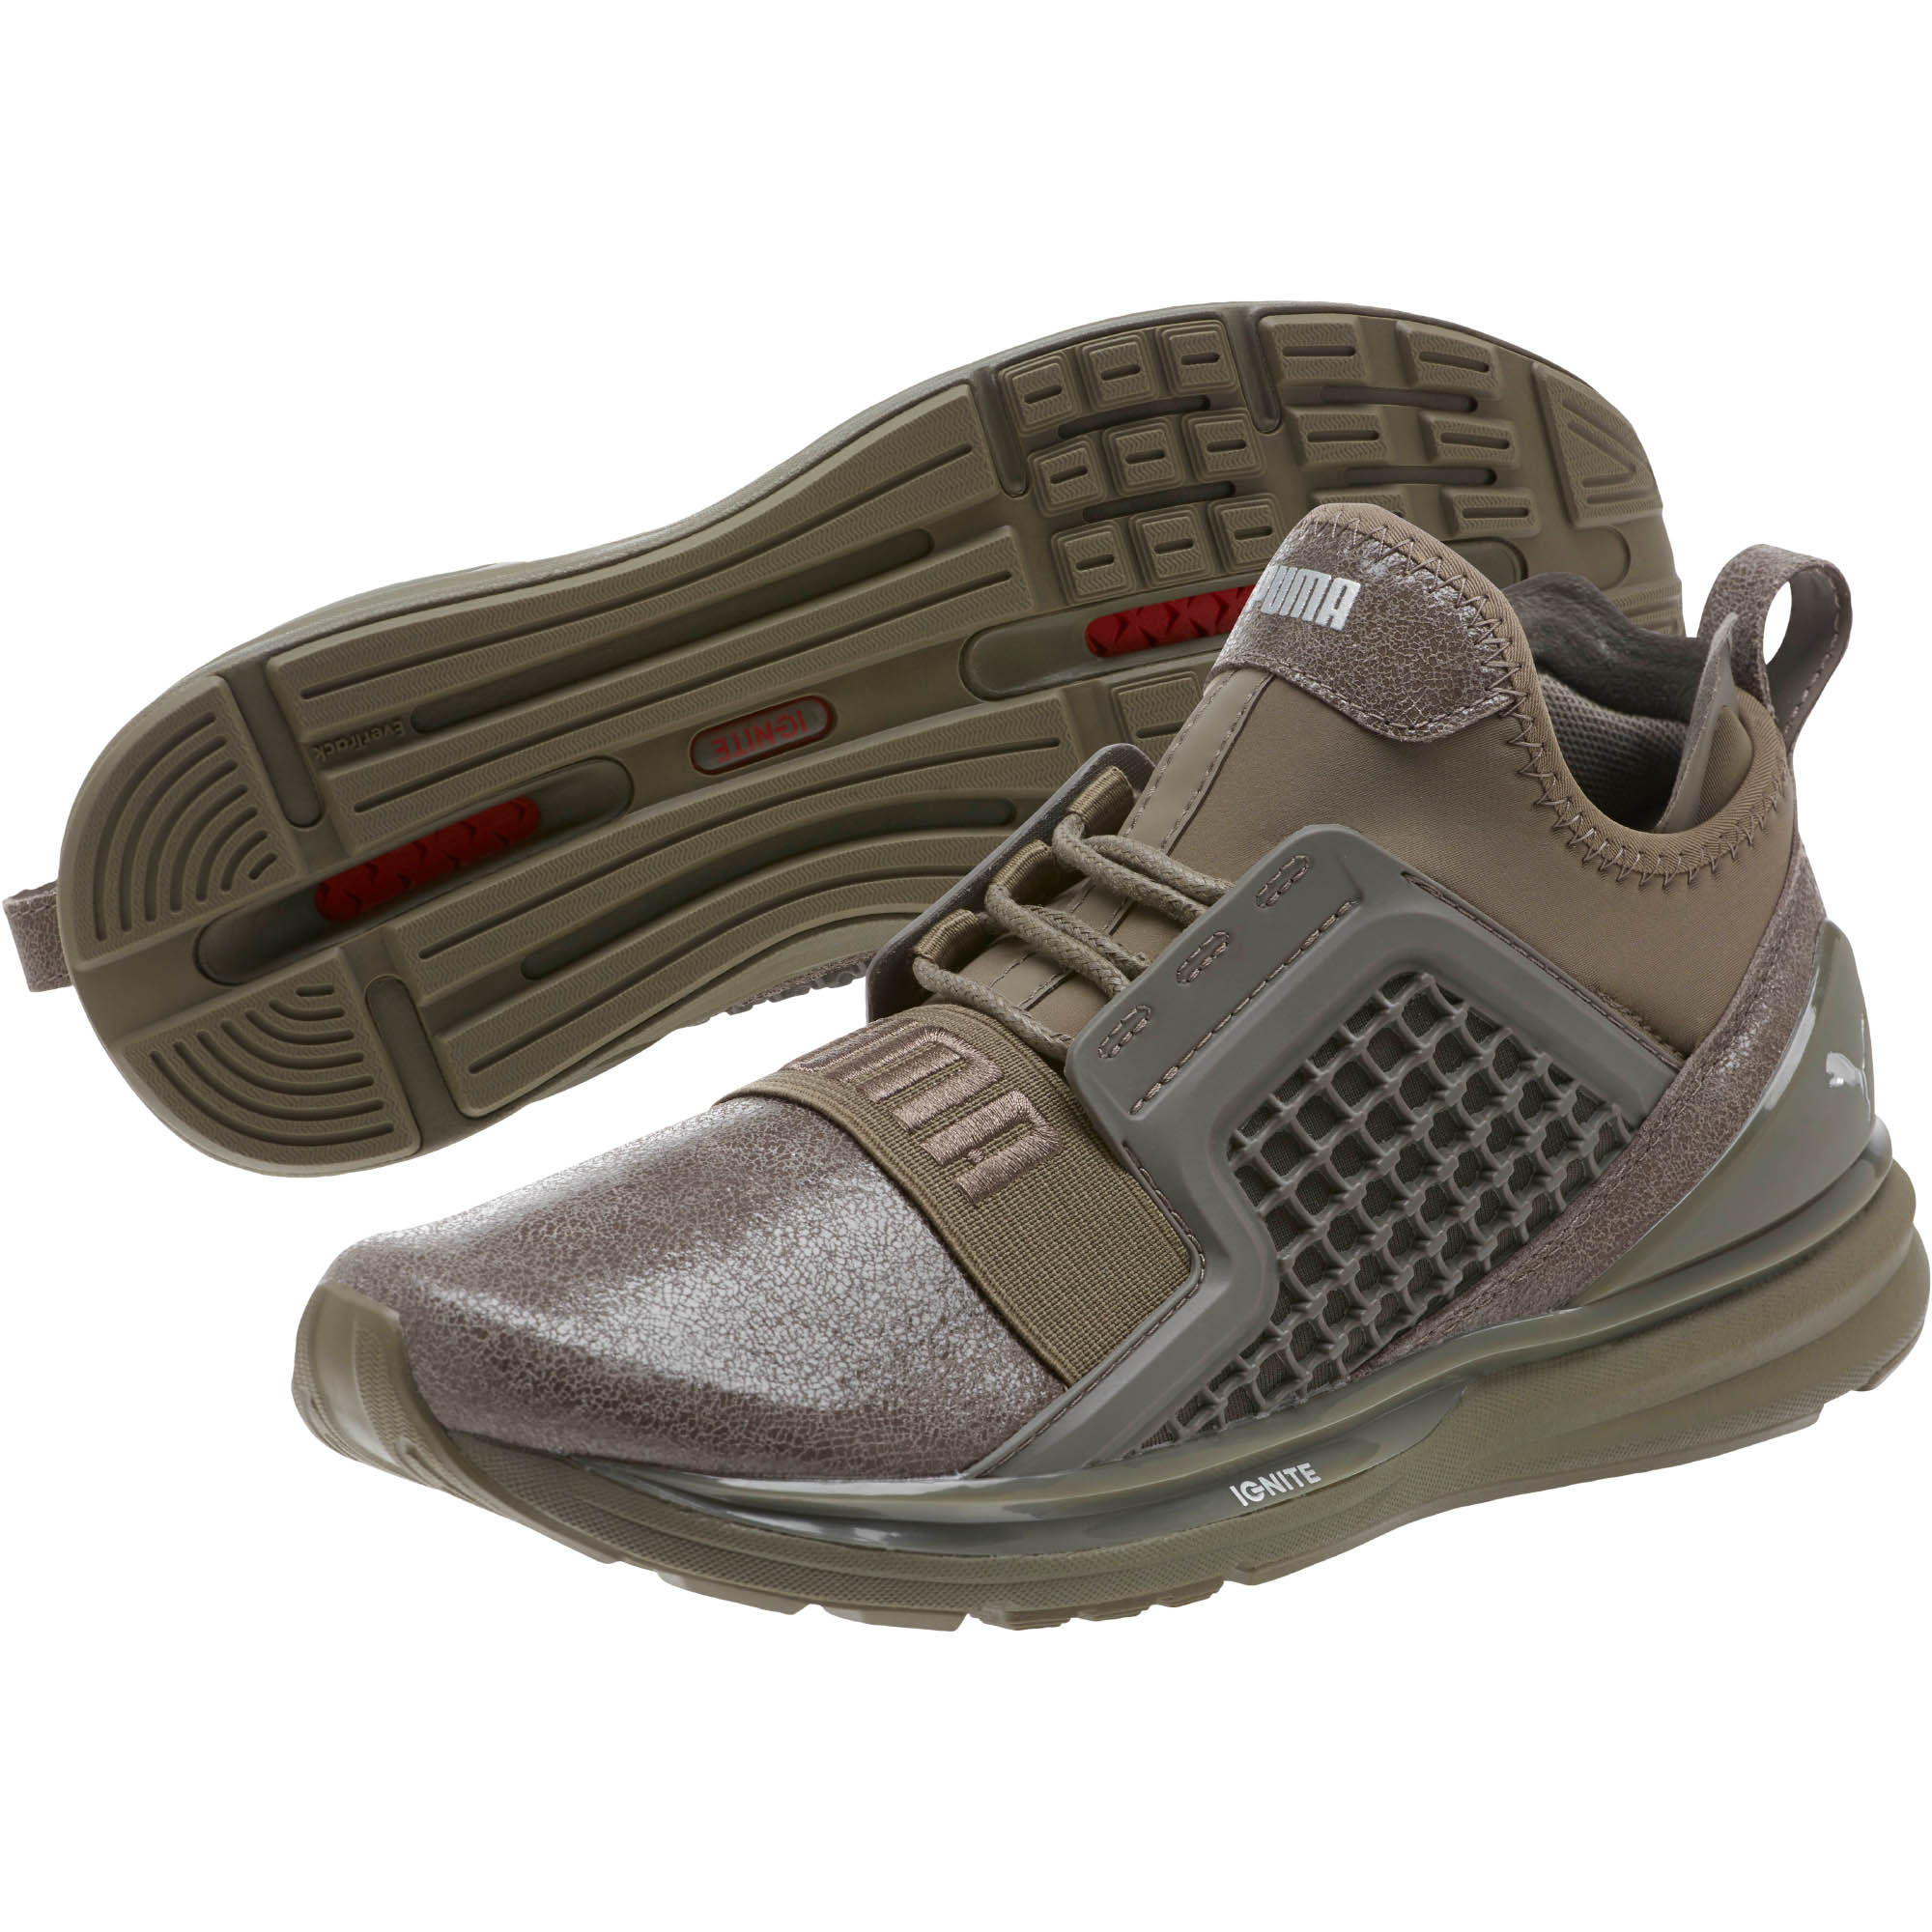 a5c5cd08ebba2 Details about Puma Ignite Limitless Metallic Suede Women's Sneaker Shoes  Bungee Cord 19096501